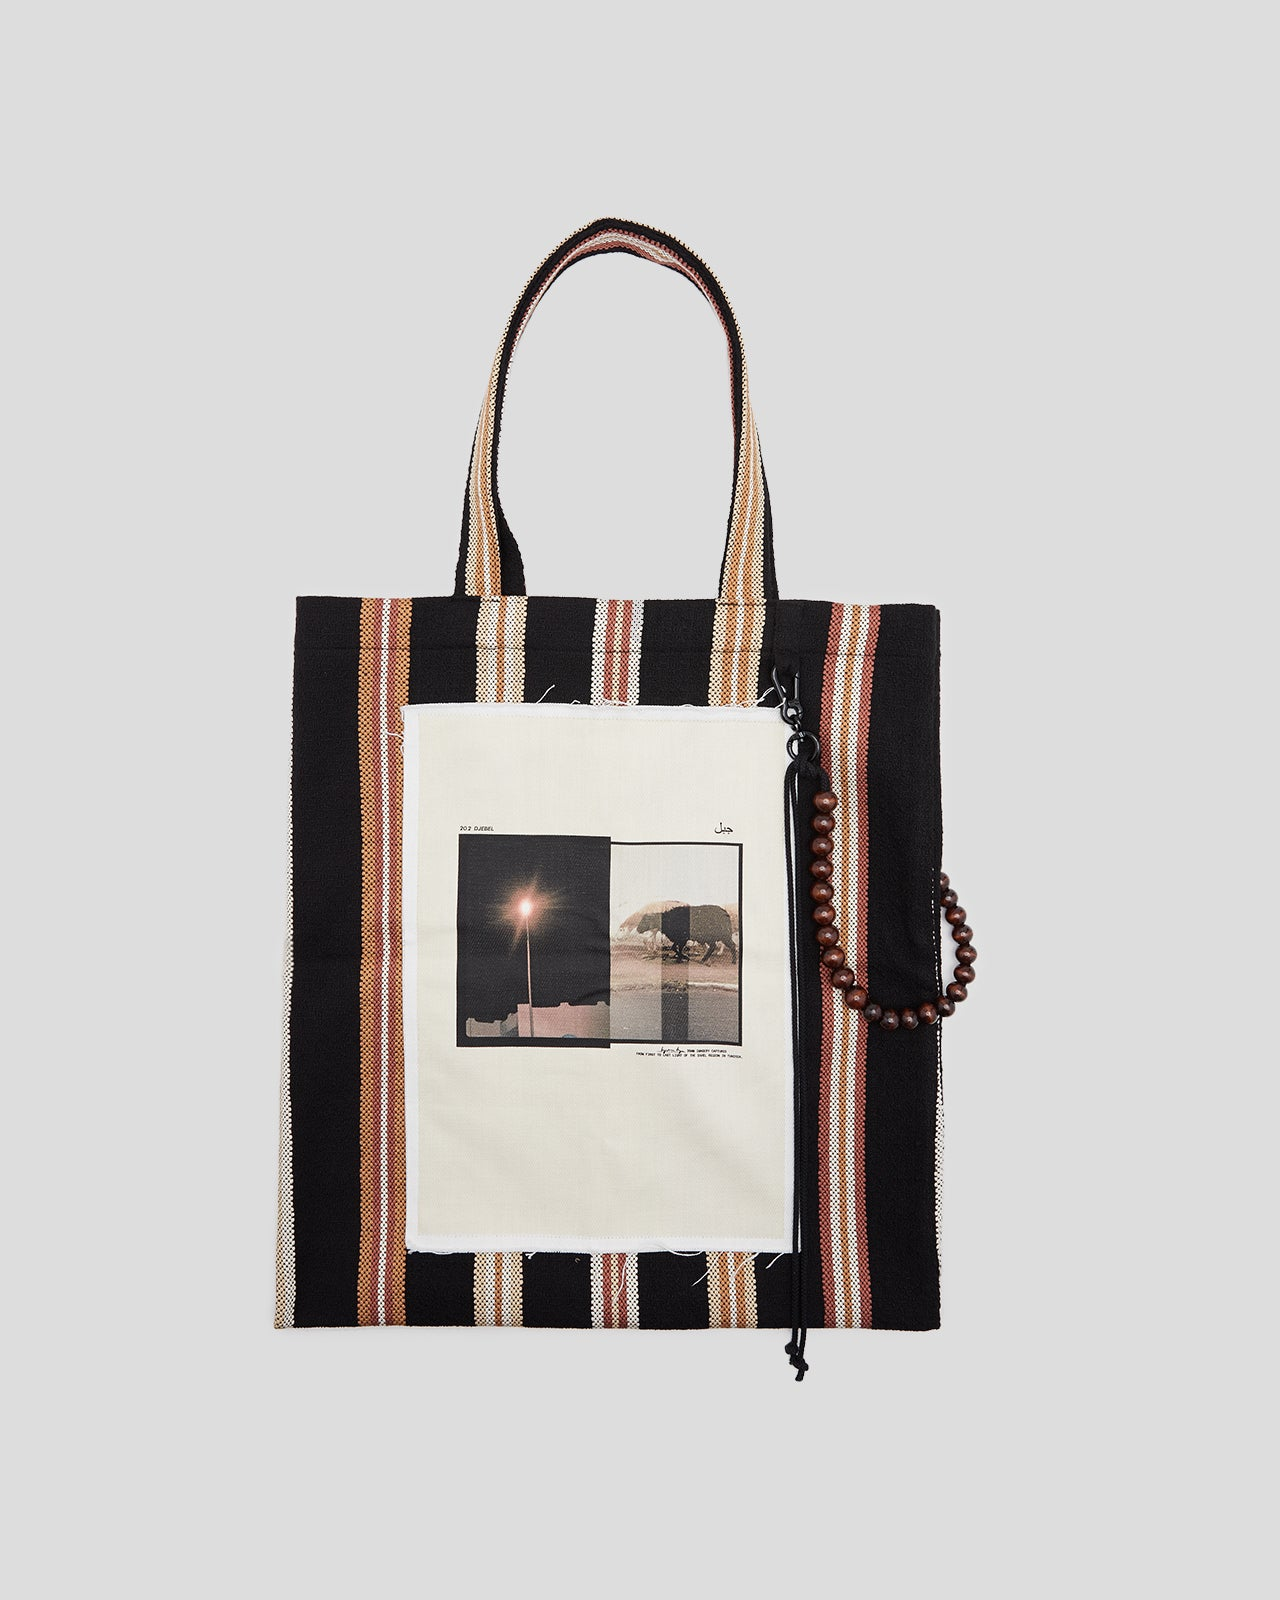 Black Sheep Tote Bag in Black